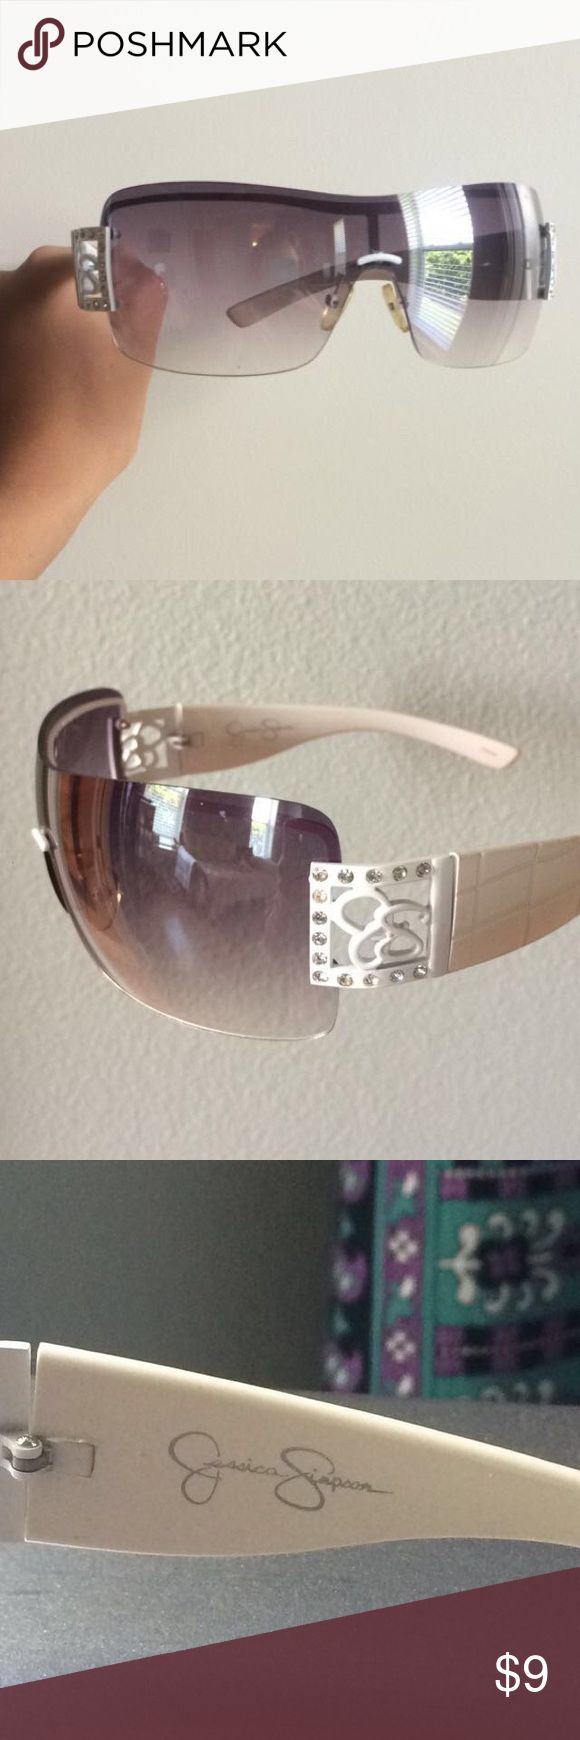 Jessica Simpson Sunglasses Rimless sunglasses with a Jessica Simpson logos surrounded by faux diamondsThe arms have snake skin looking impressions. Not worn much; minor impurities here and there. ✨Block the summer sun & look good doing it! Jessica Simpson Accessories Glasses